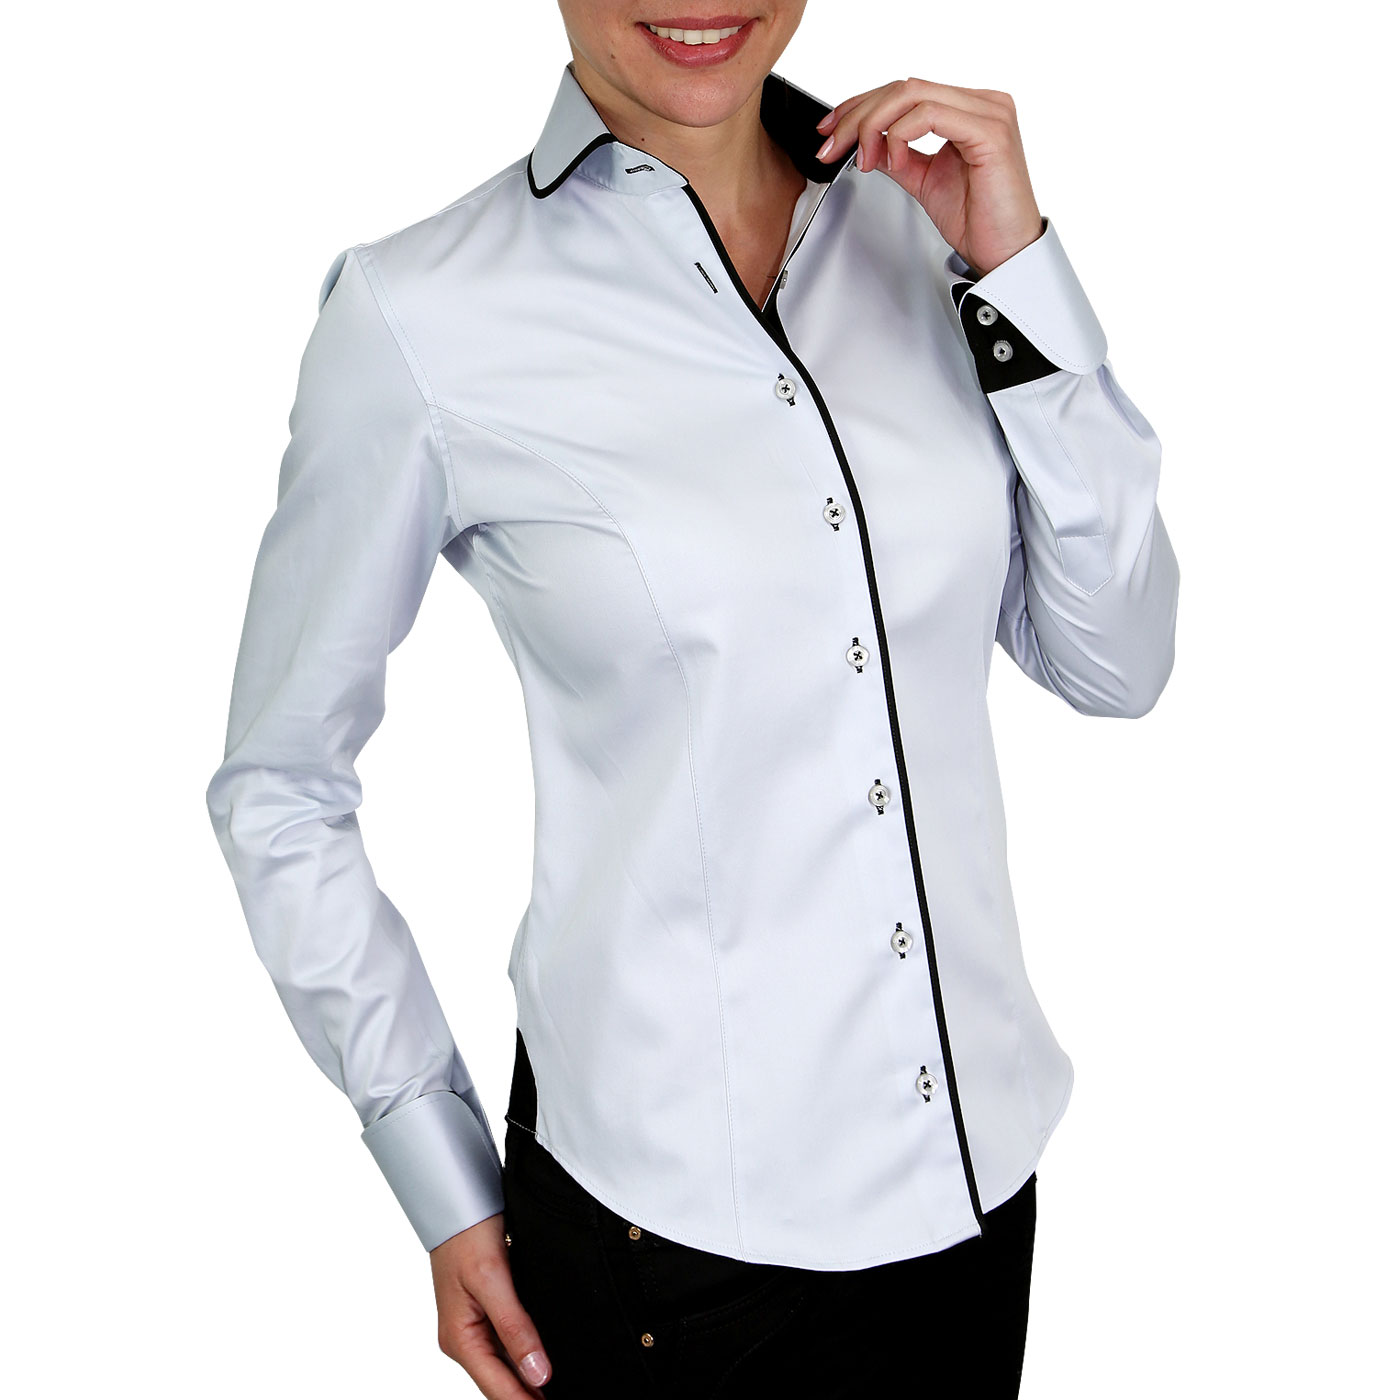 Woman shirt napolitan cuffs